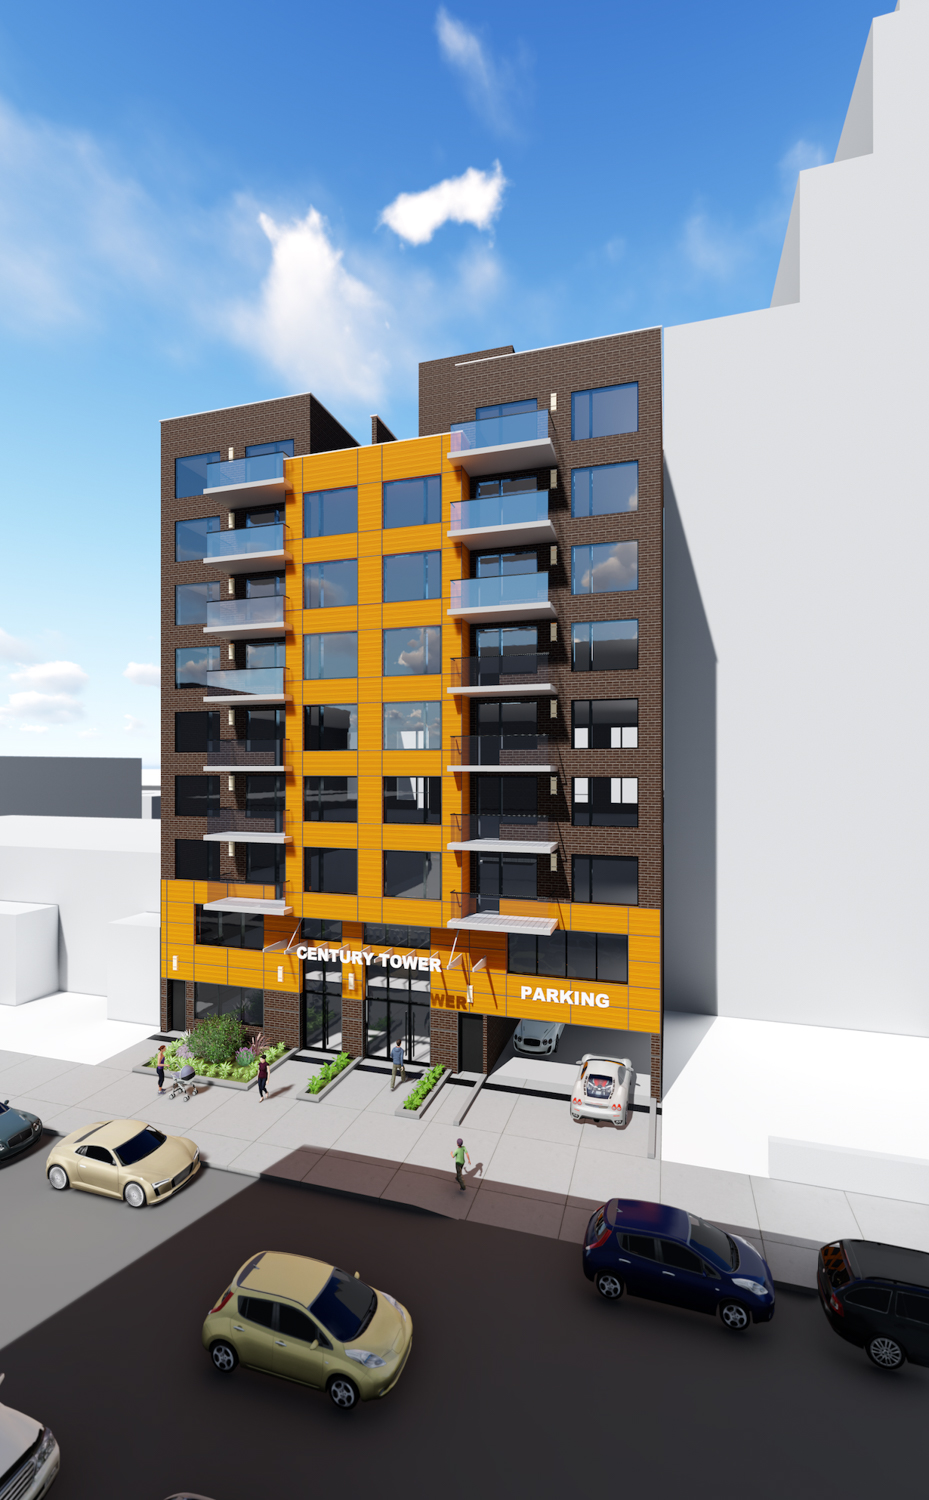 132-25, 27 41st Road, rendering courtesy NY Excelsior